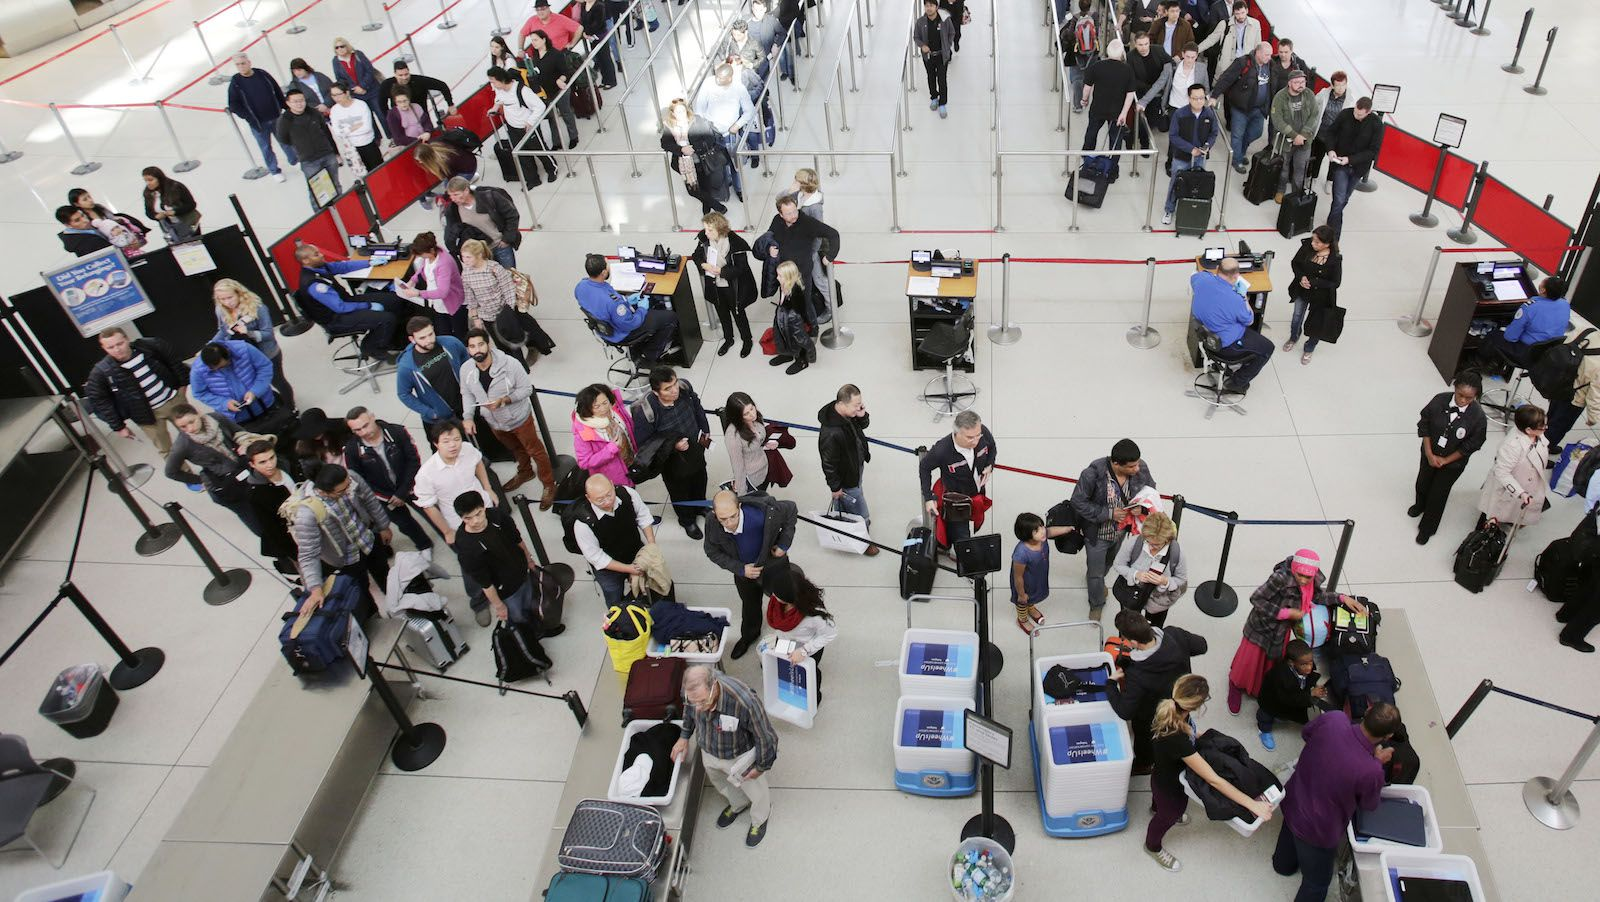 In this Oct. 30, 2014 photo, passengers line up to pass through security before boarding flights at John F. Kennedy International Airport in New York. A snowstorm is forecast for Wednesday and Thursday, Thanksgiving Day, for parts of the East Coast, potentially snarling holiday travel plans. (AP Photo/Mark Lennihan)